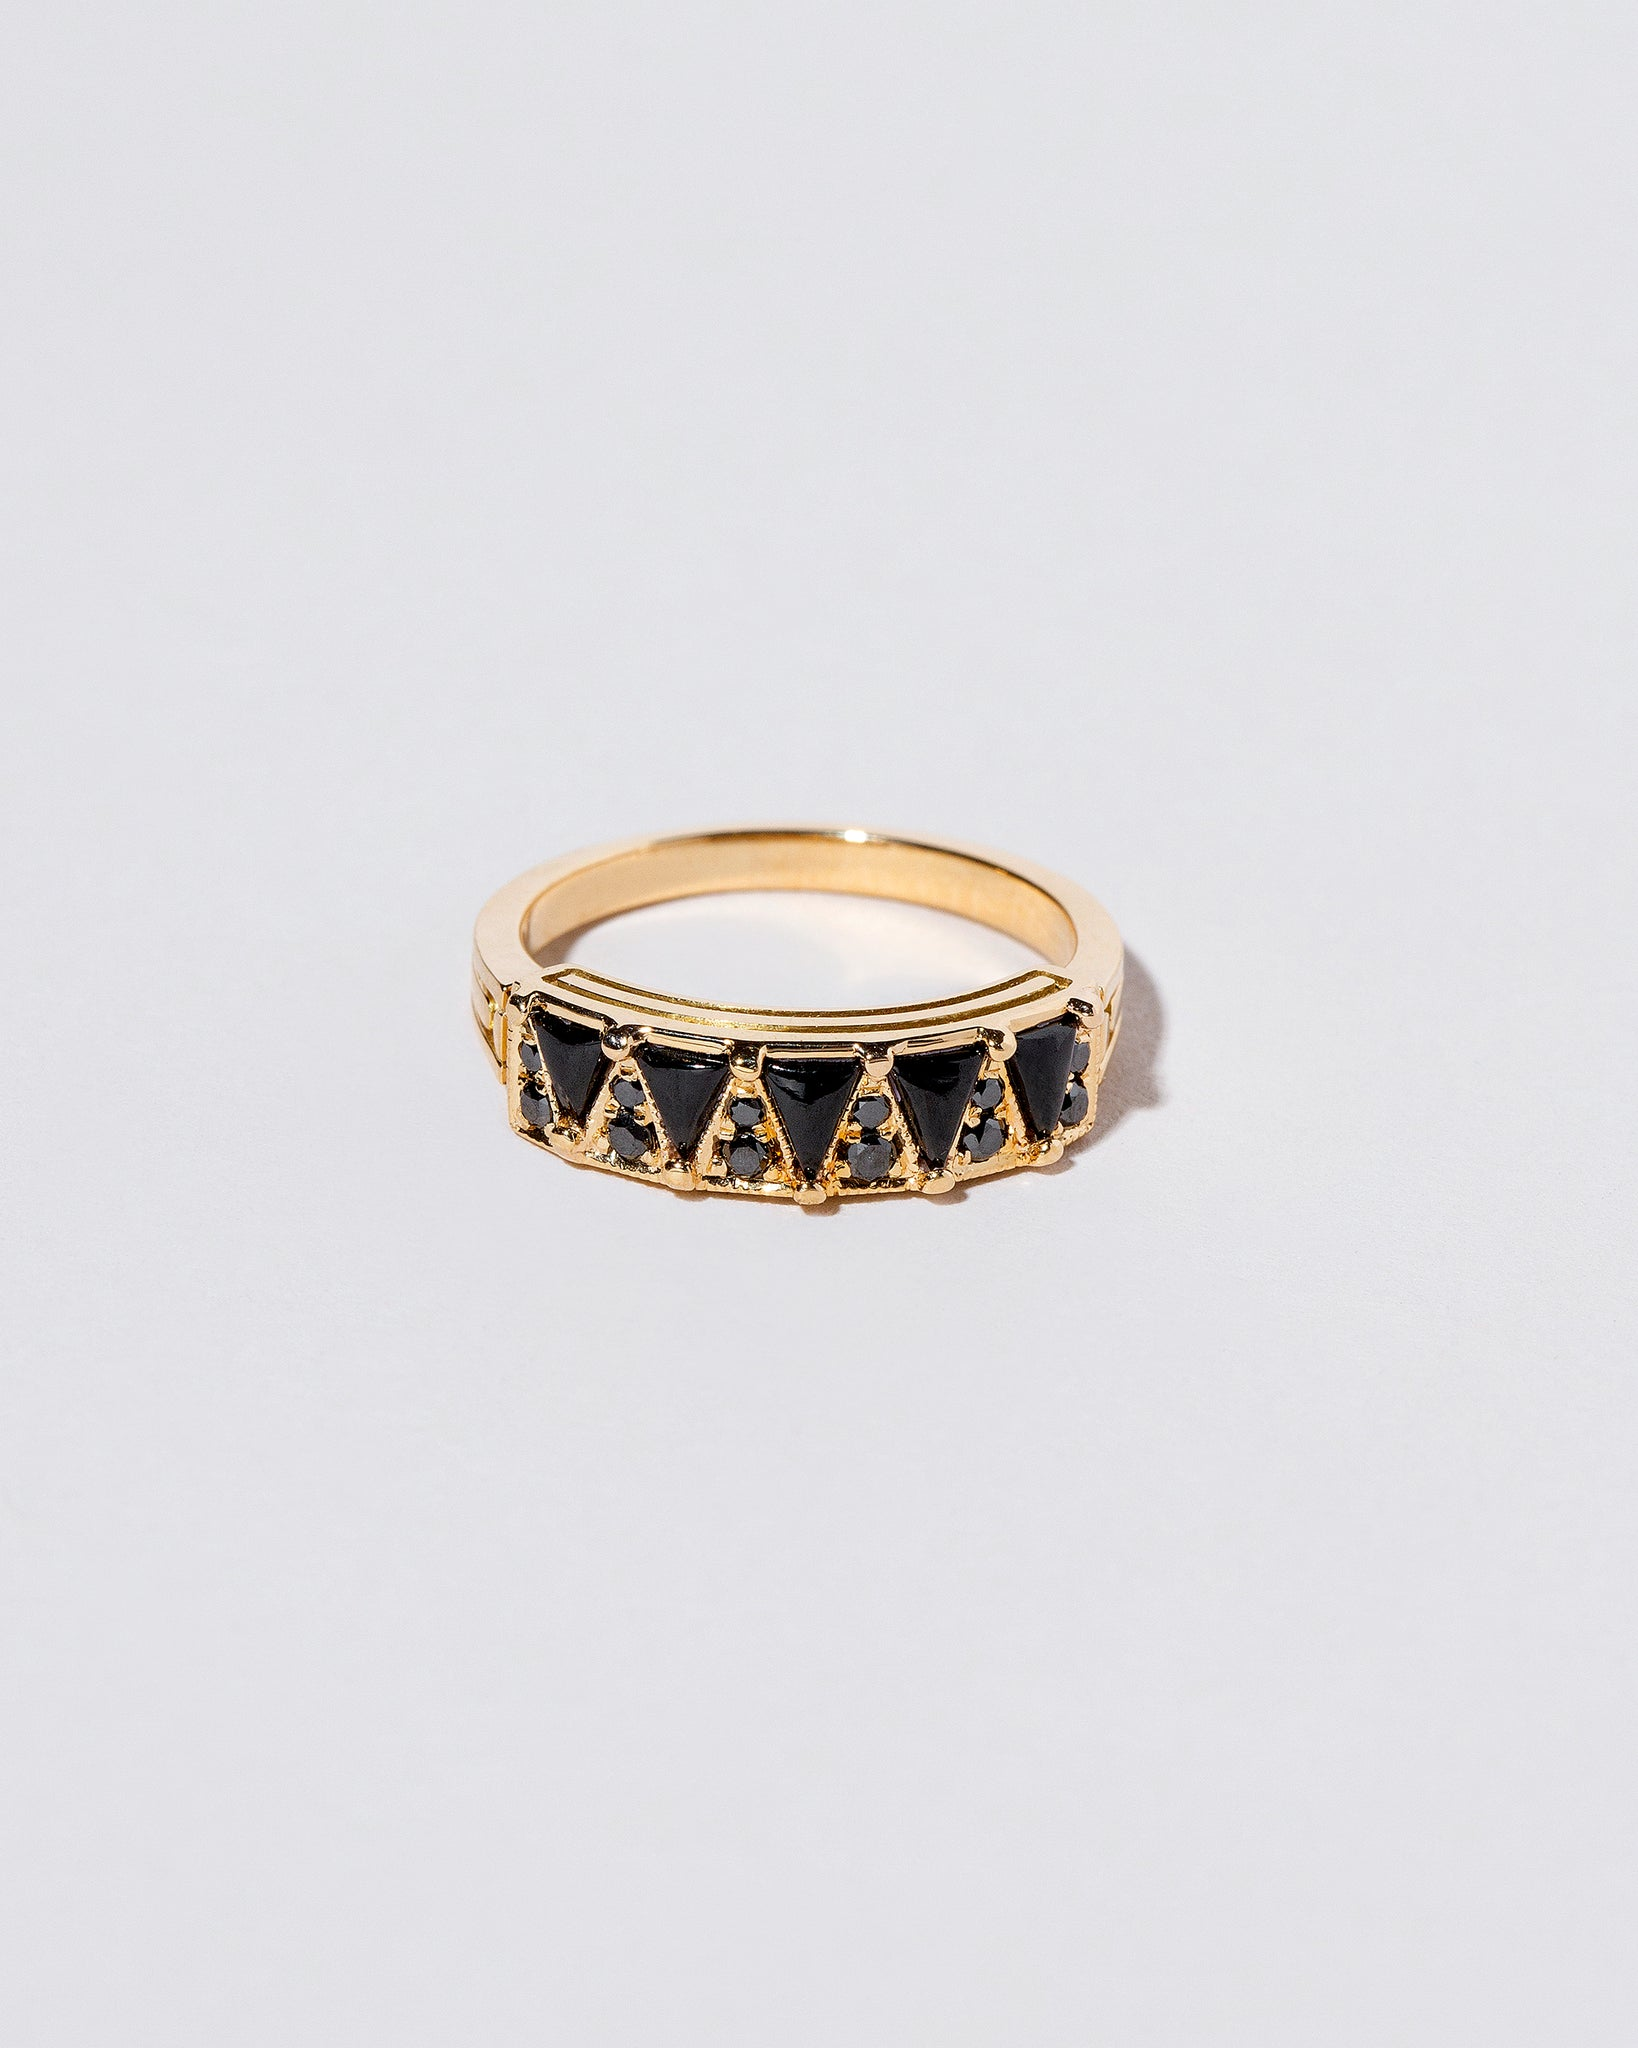 Five Triangle Ring with Black Spinel and Black diamonds